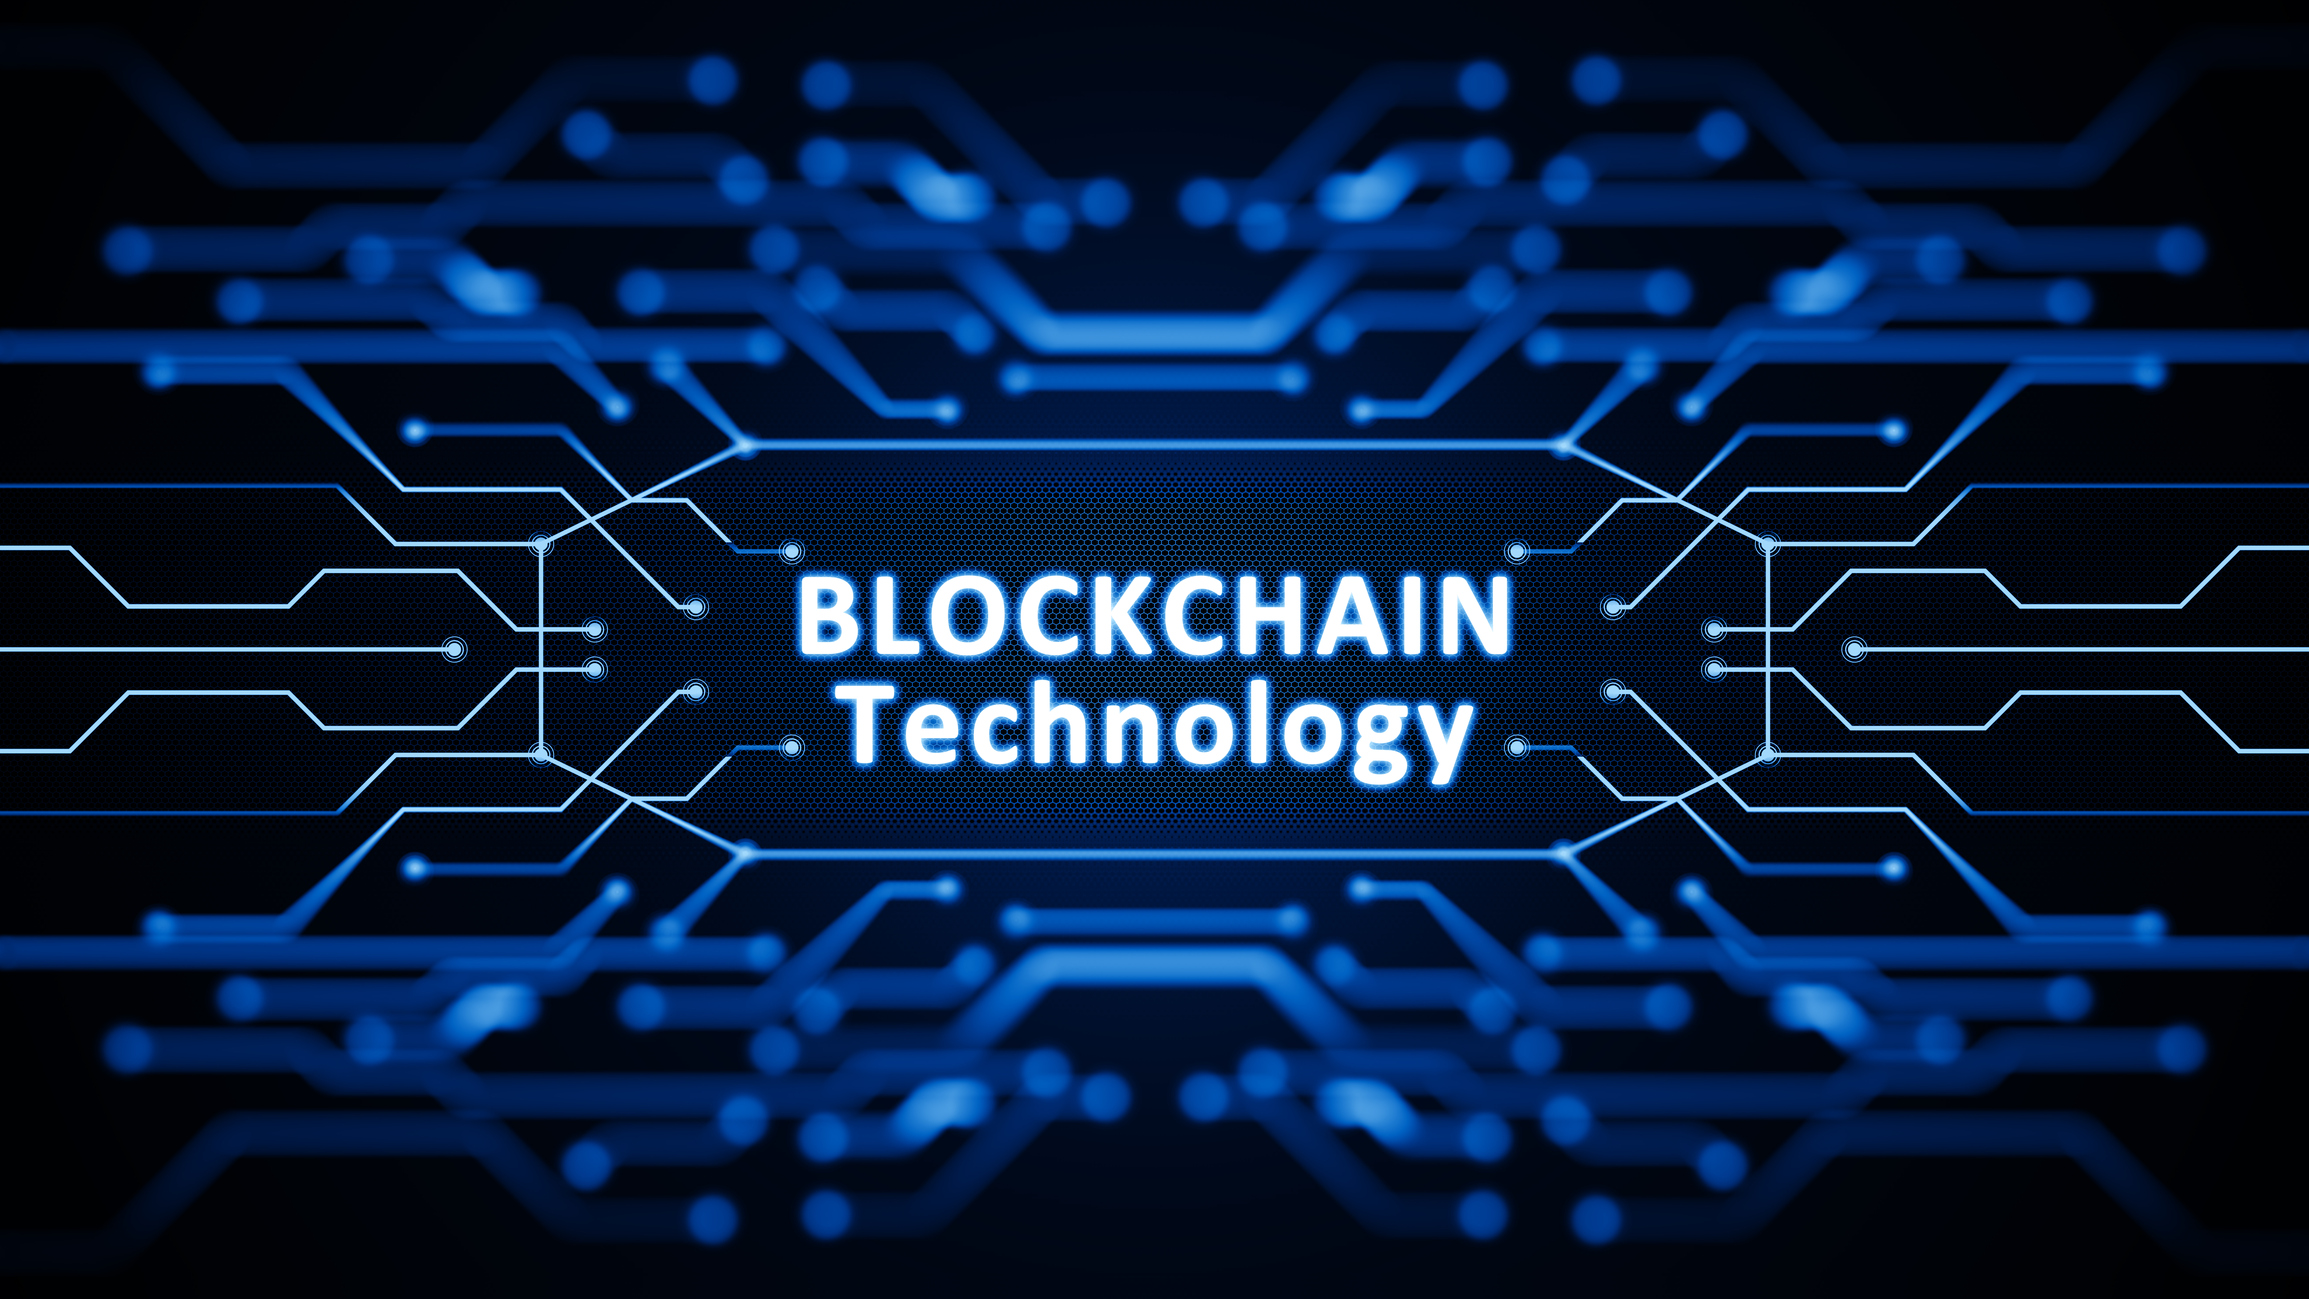 blockchain technology energy iot industry creates potential things internet optimization